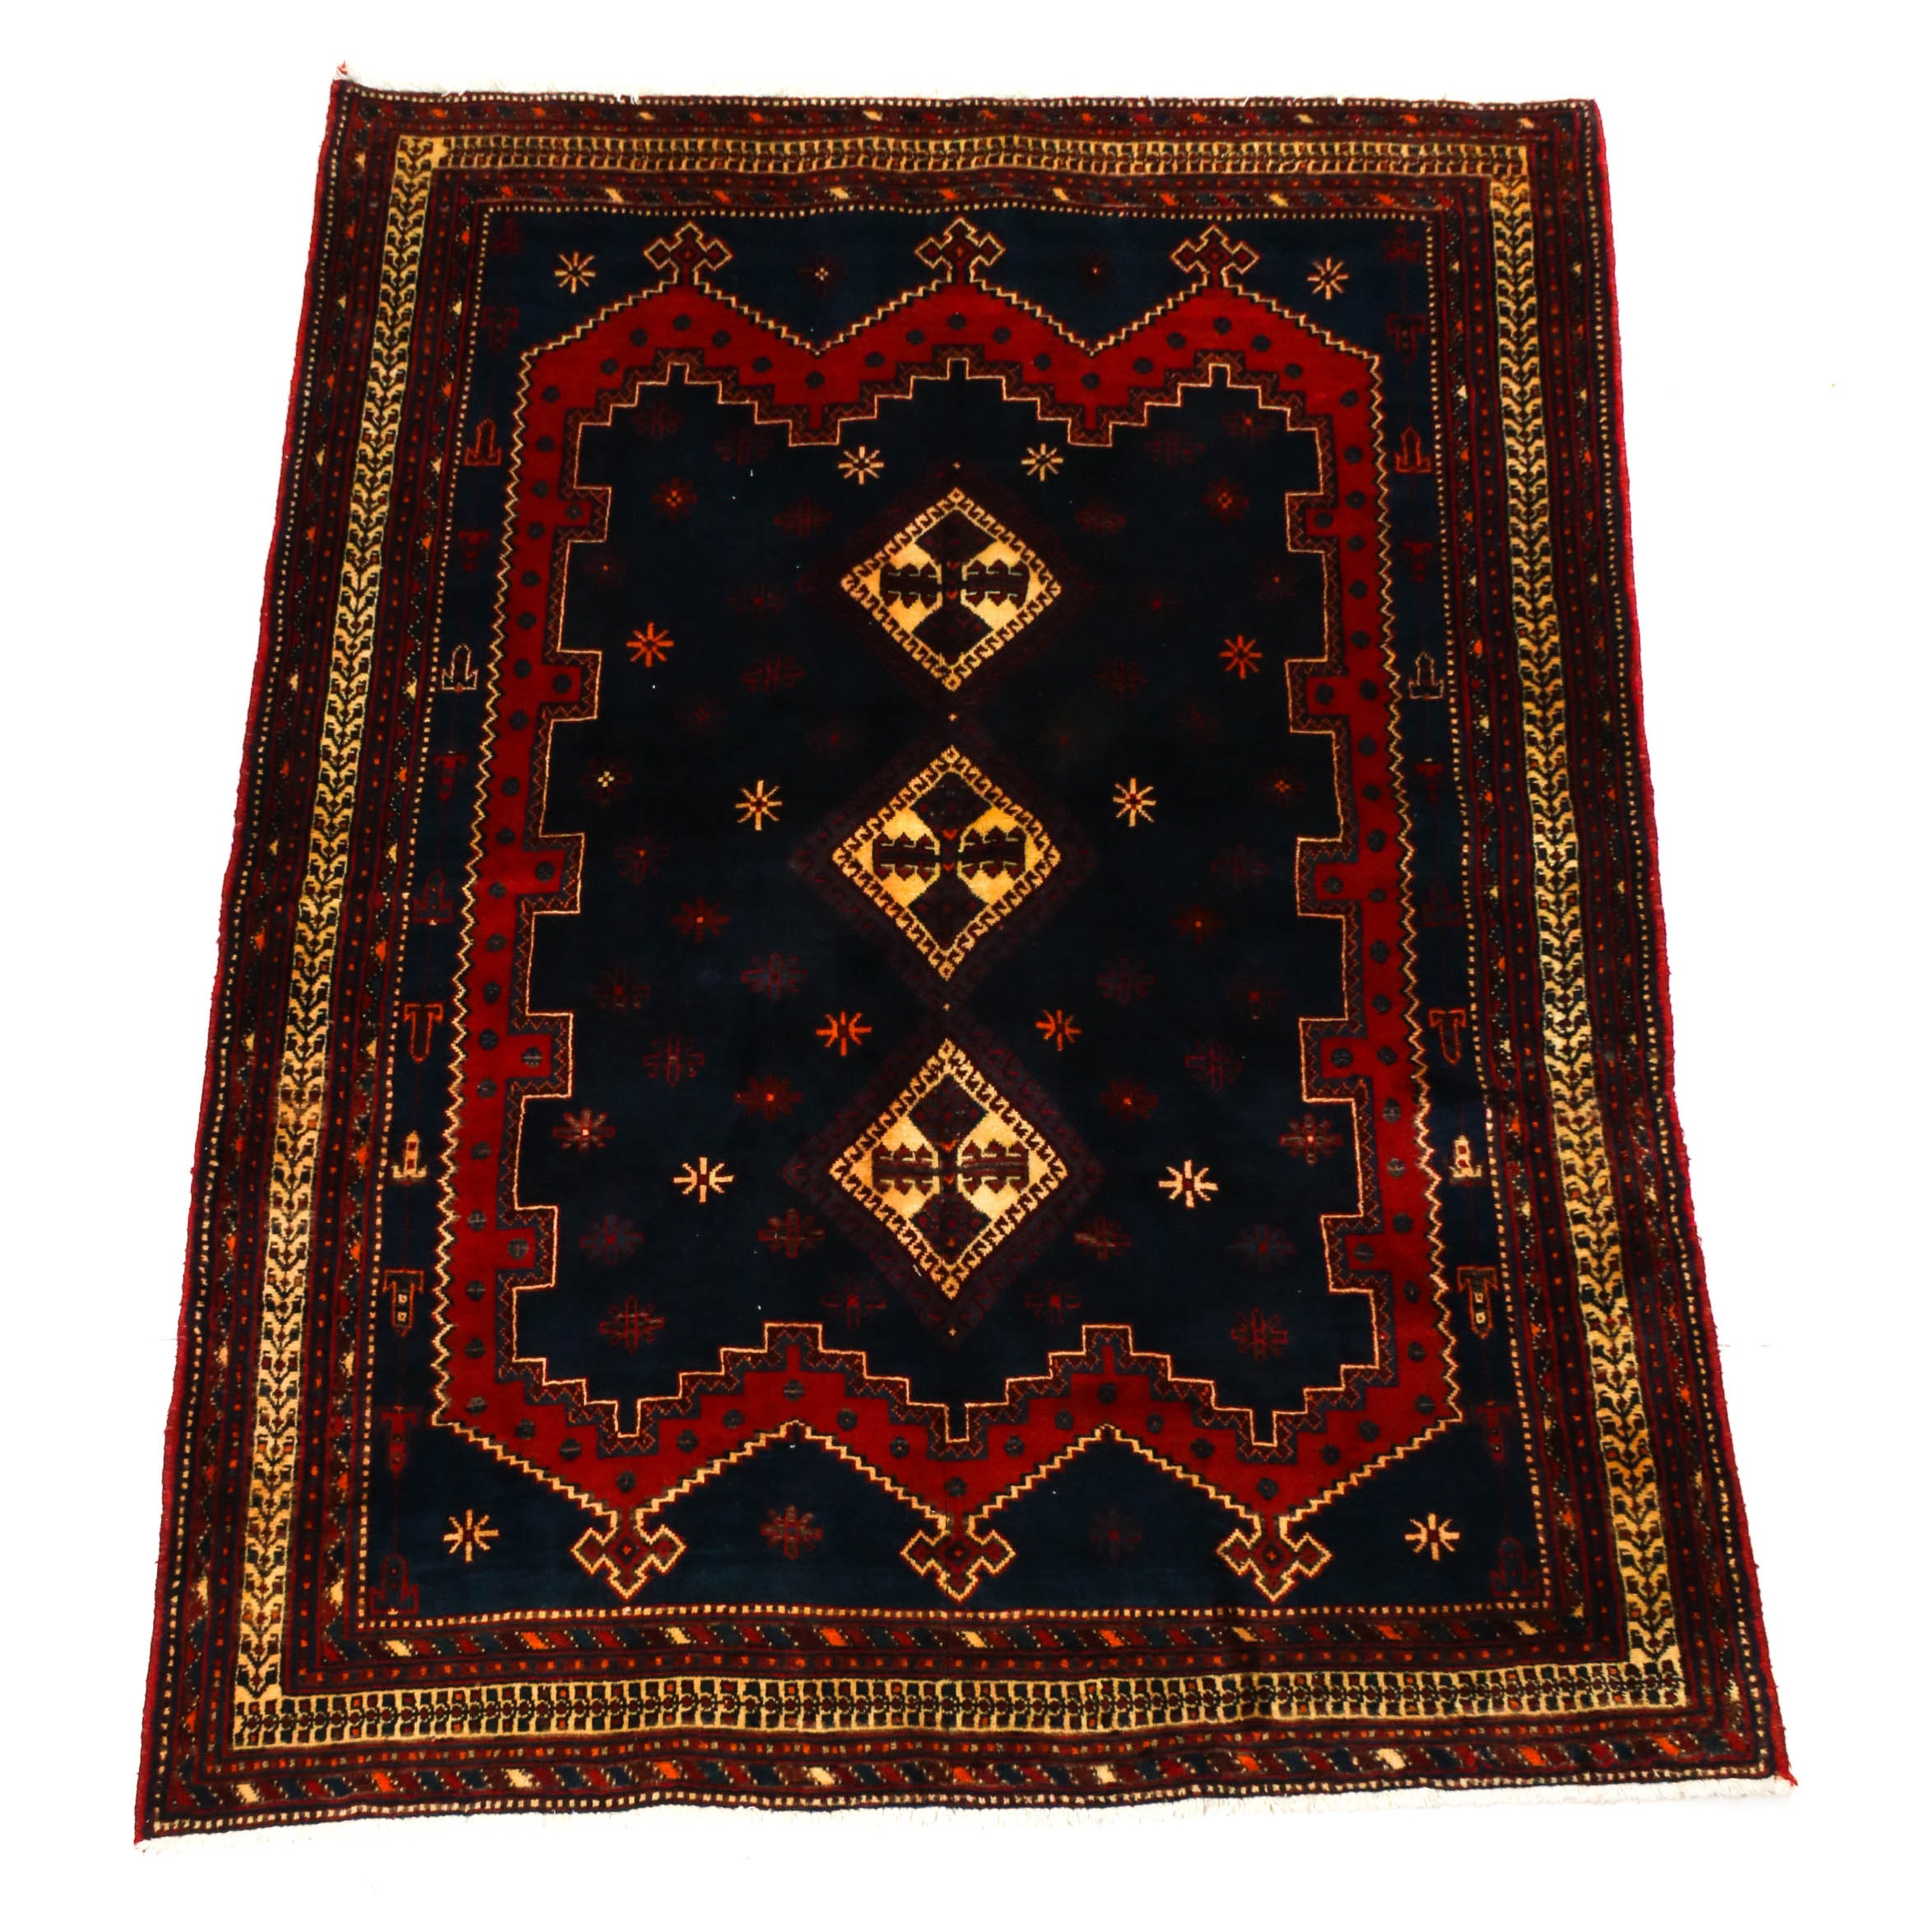 5'4 x 7'1 Hand-Knotted Persian Afshar Wool Rug